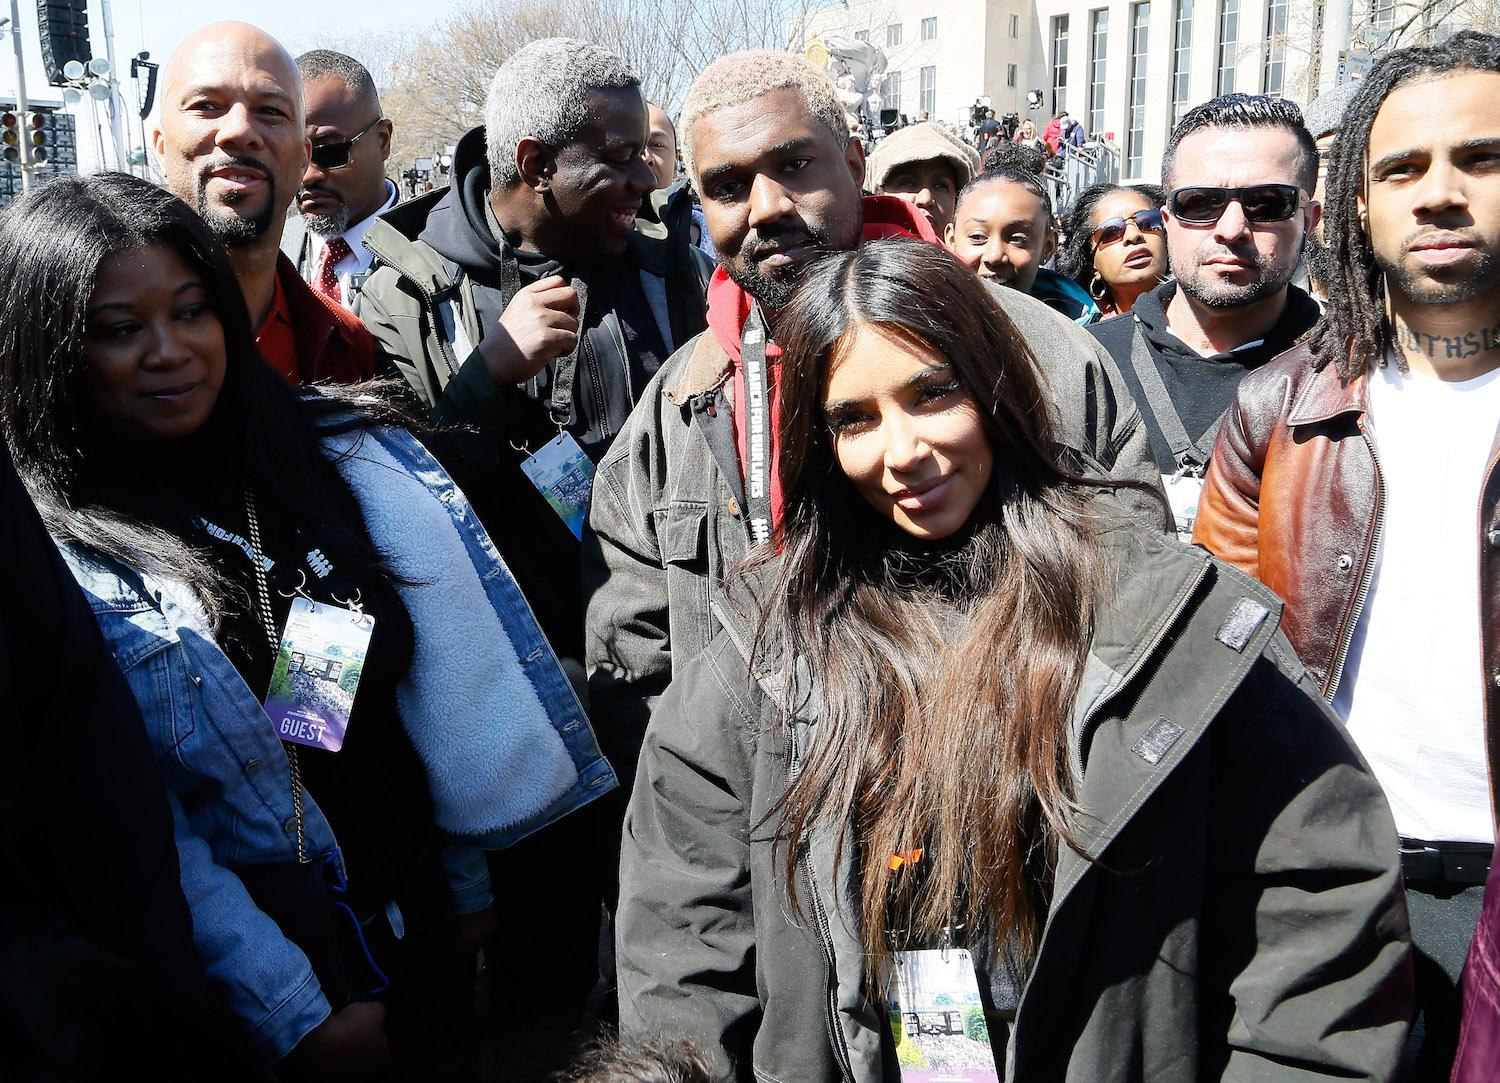 Kim Kardashian, Kanye West, Paul McCartney and more celebs attend March for Our Lives